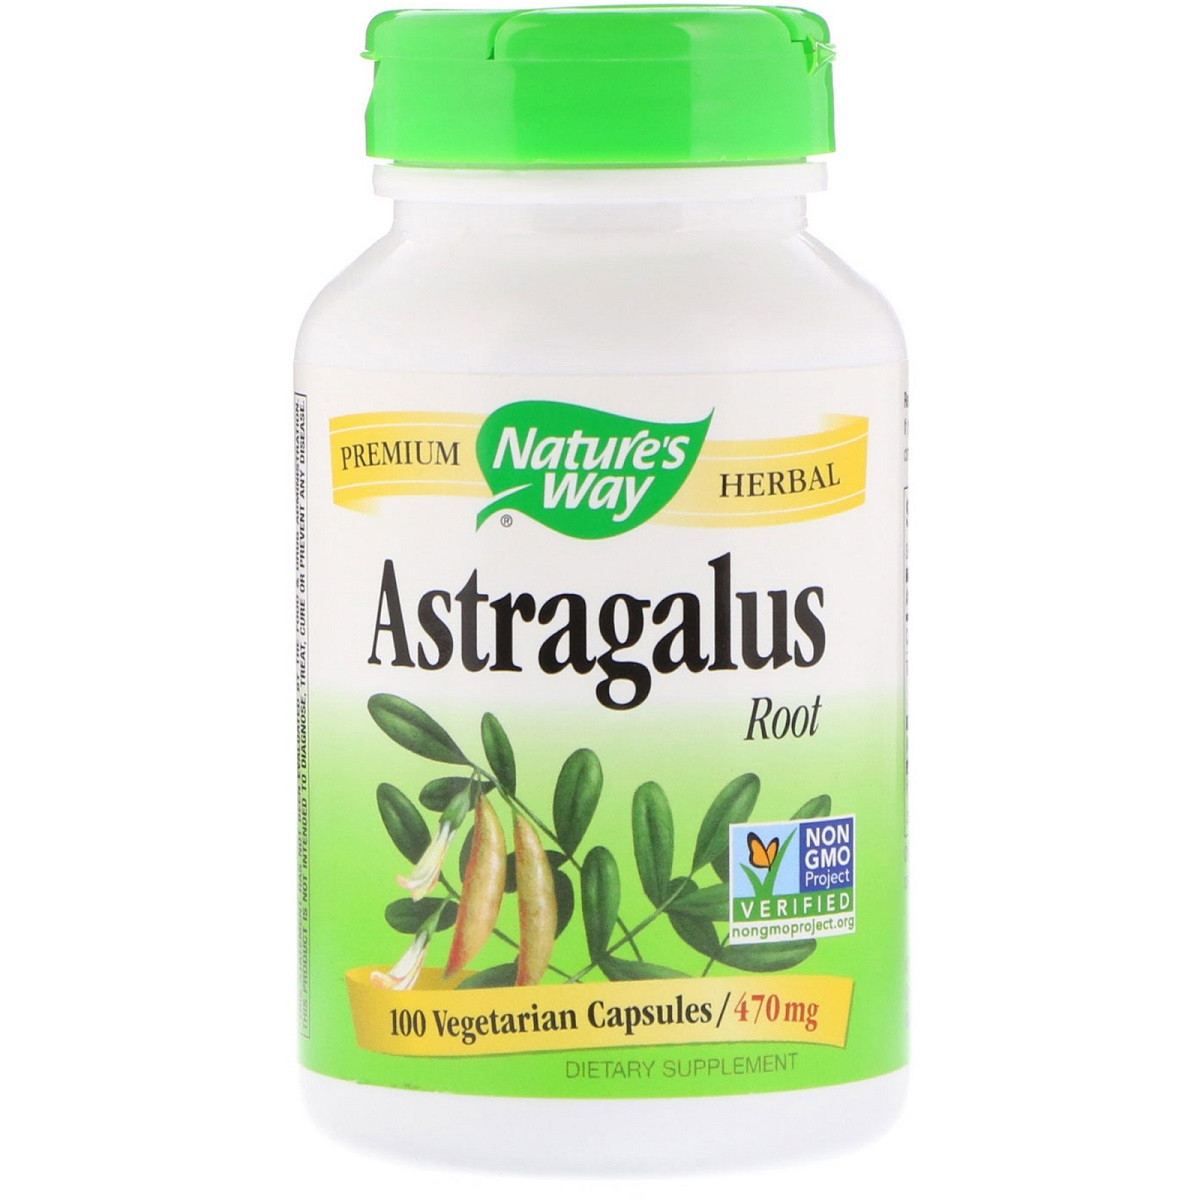 Корень Астрагала, Astragalus Root, Nature's Way, 470 mg, 100 Капсул